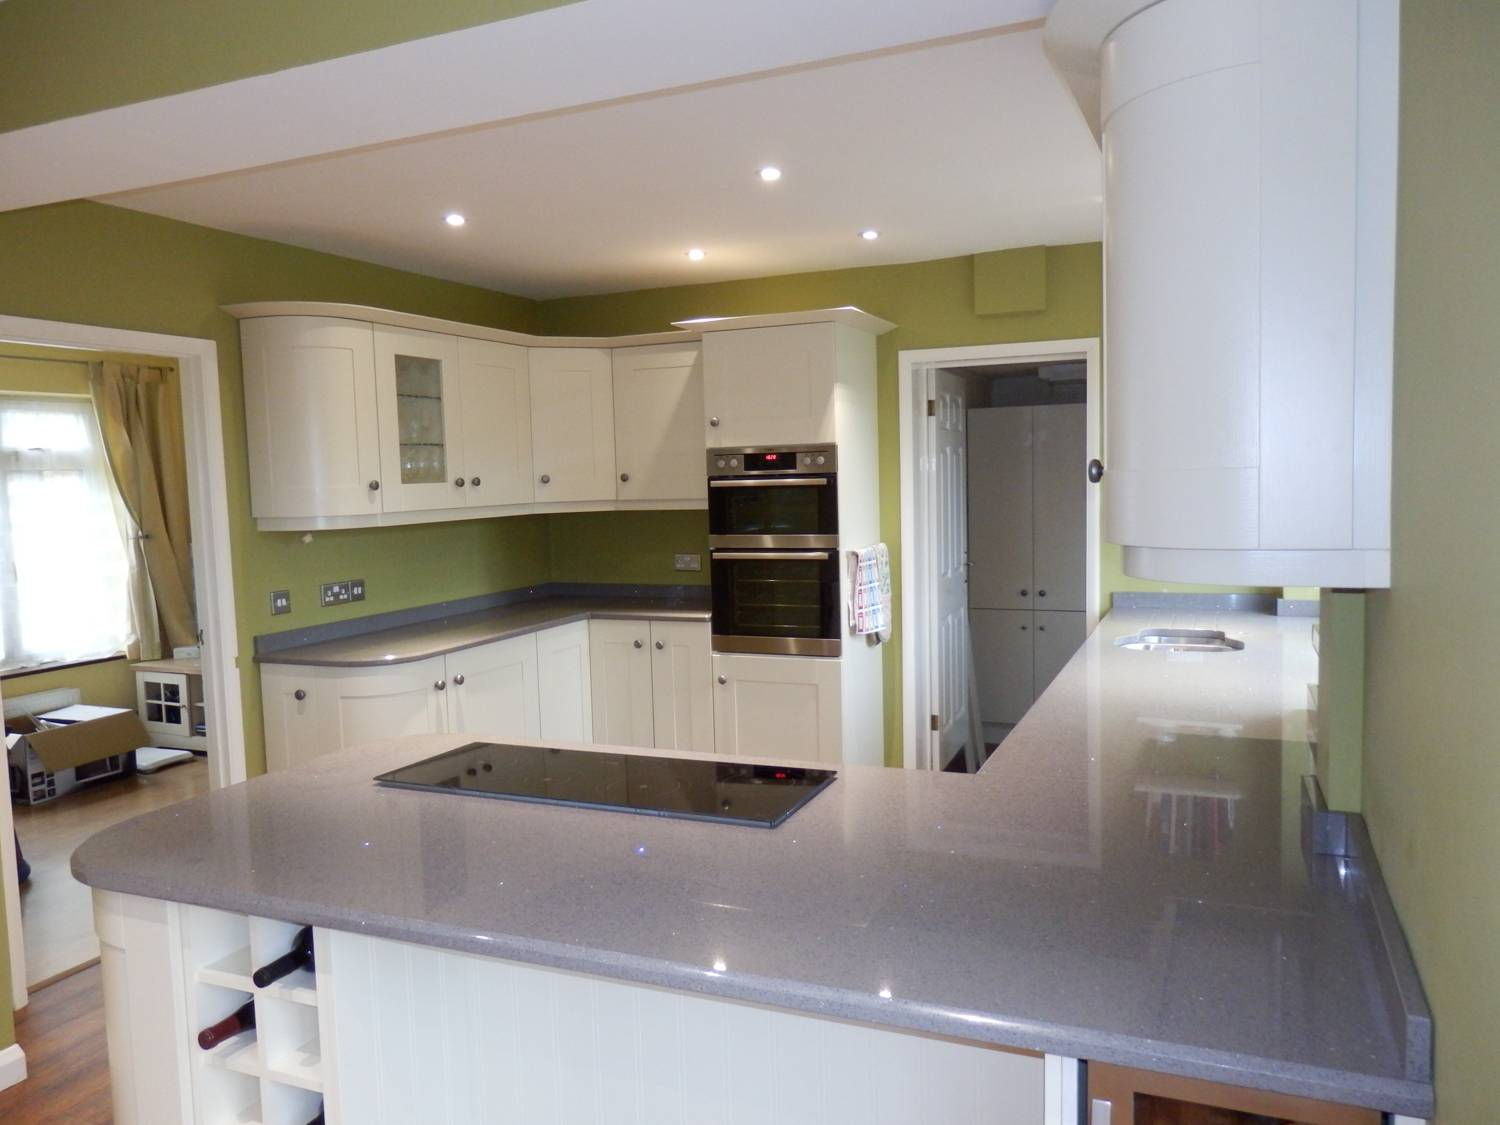 Granite Worktops Marble Worktops Quartz Technistone Starlight Grey Kitchen Worktops